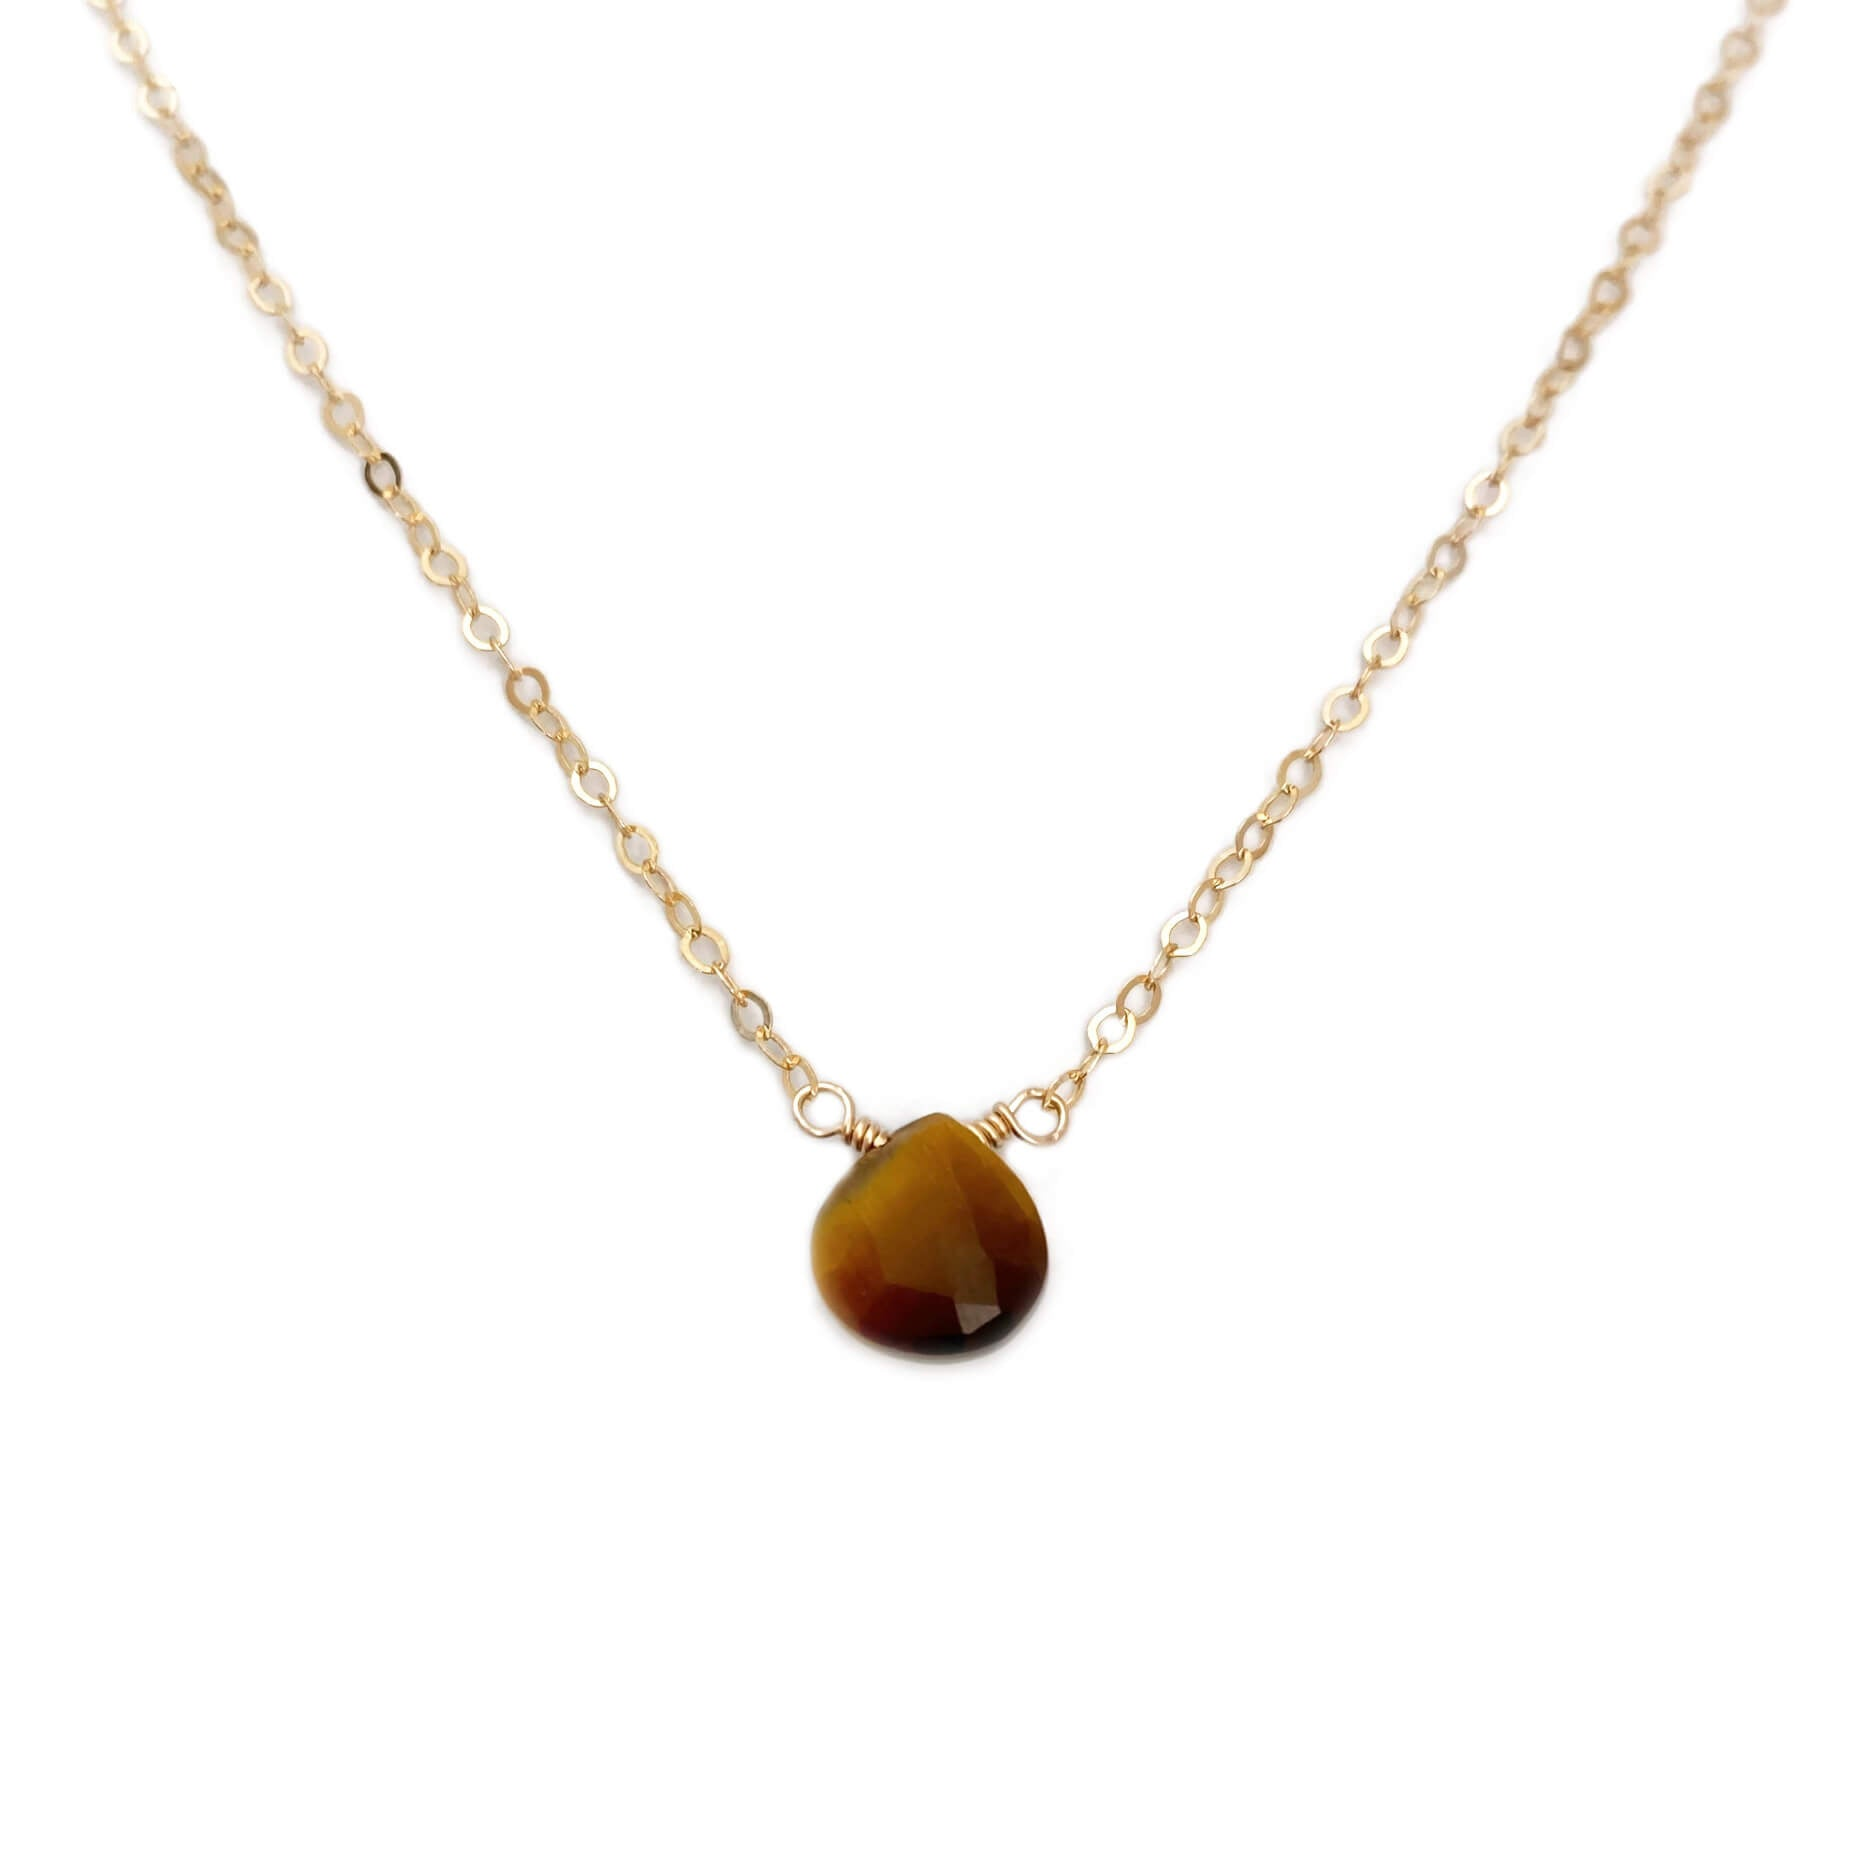 Dainty tiger eye necklace is made with a single tiger eye gemstone.